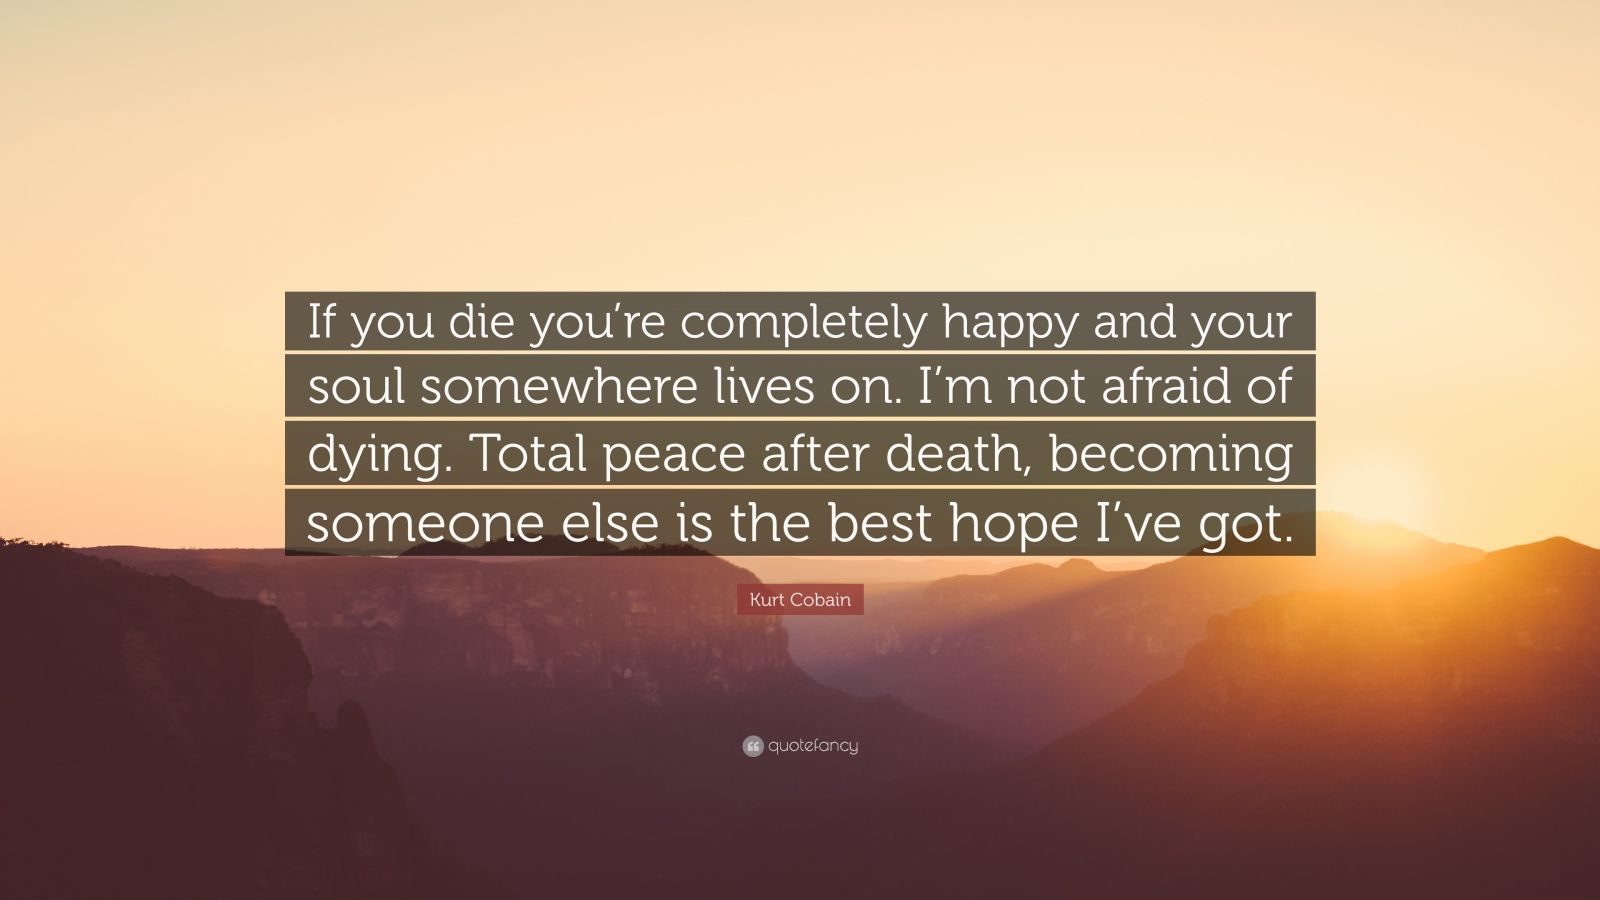 """Kurt Cobain Quote: """"If you die you're completely happy and your soul somewhere lives on. I'm not afraid of dying. Total peace after death, becoming someone else is the best hope I've got."""""""